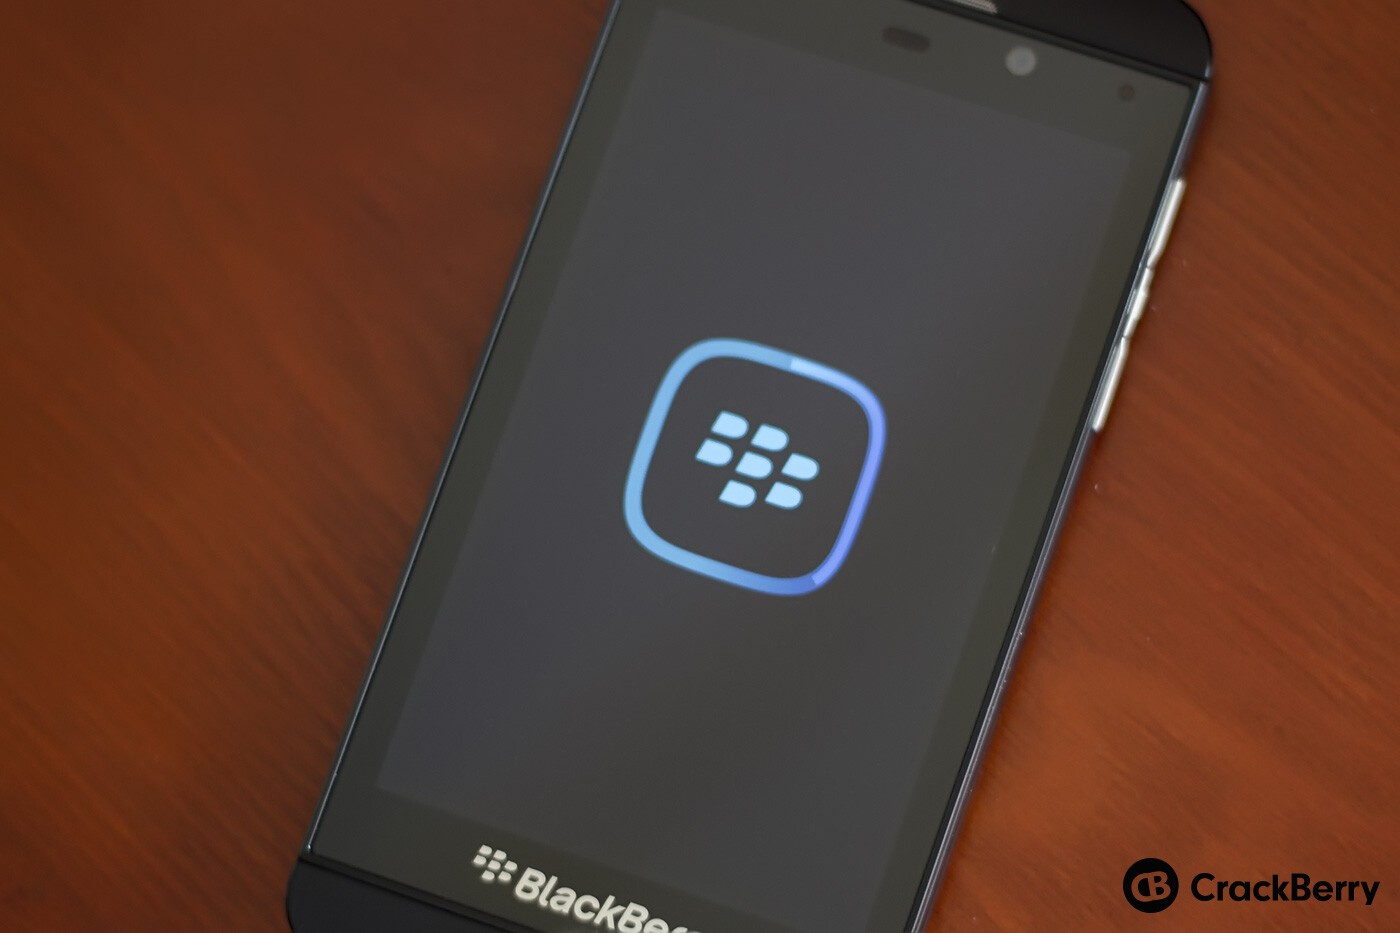 What's new in BlackBerry OS 10 2 1 | CrackBerry com